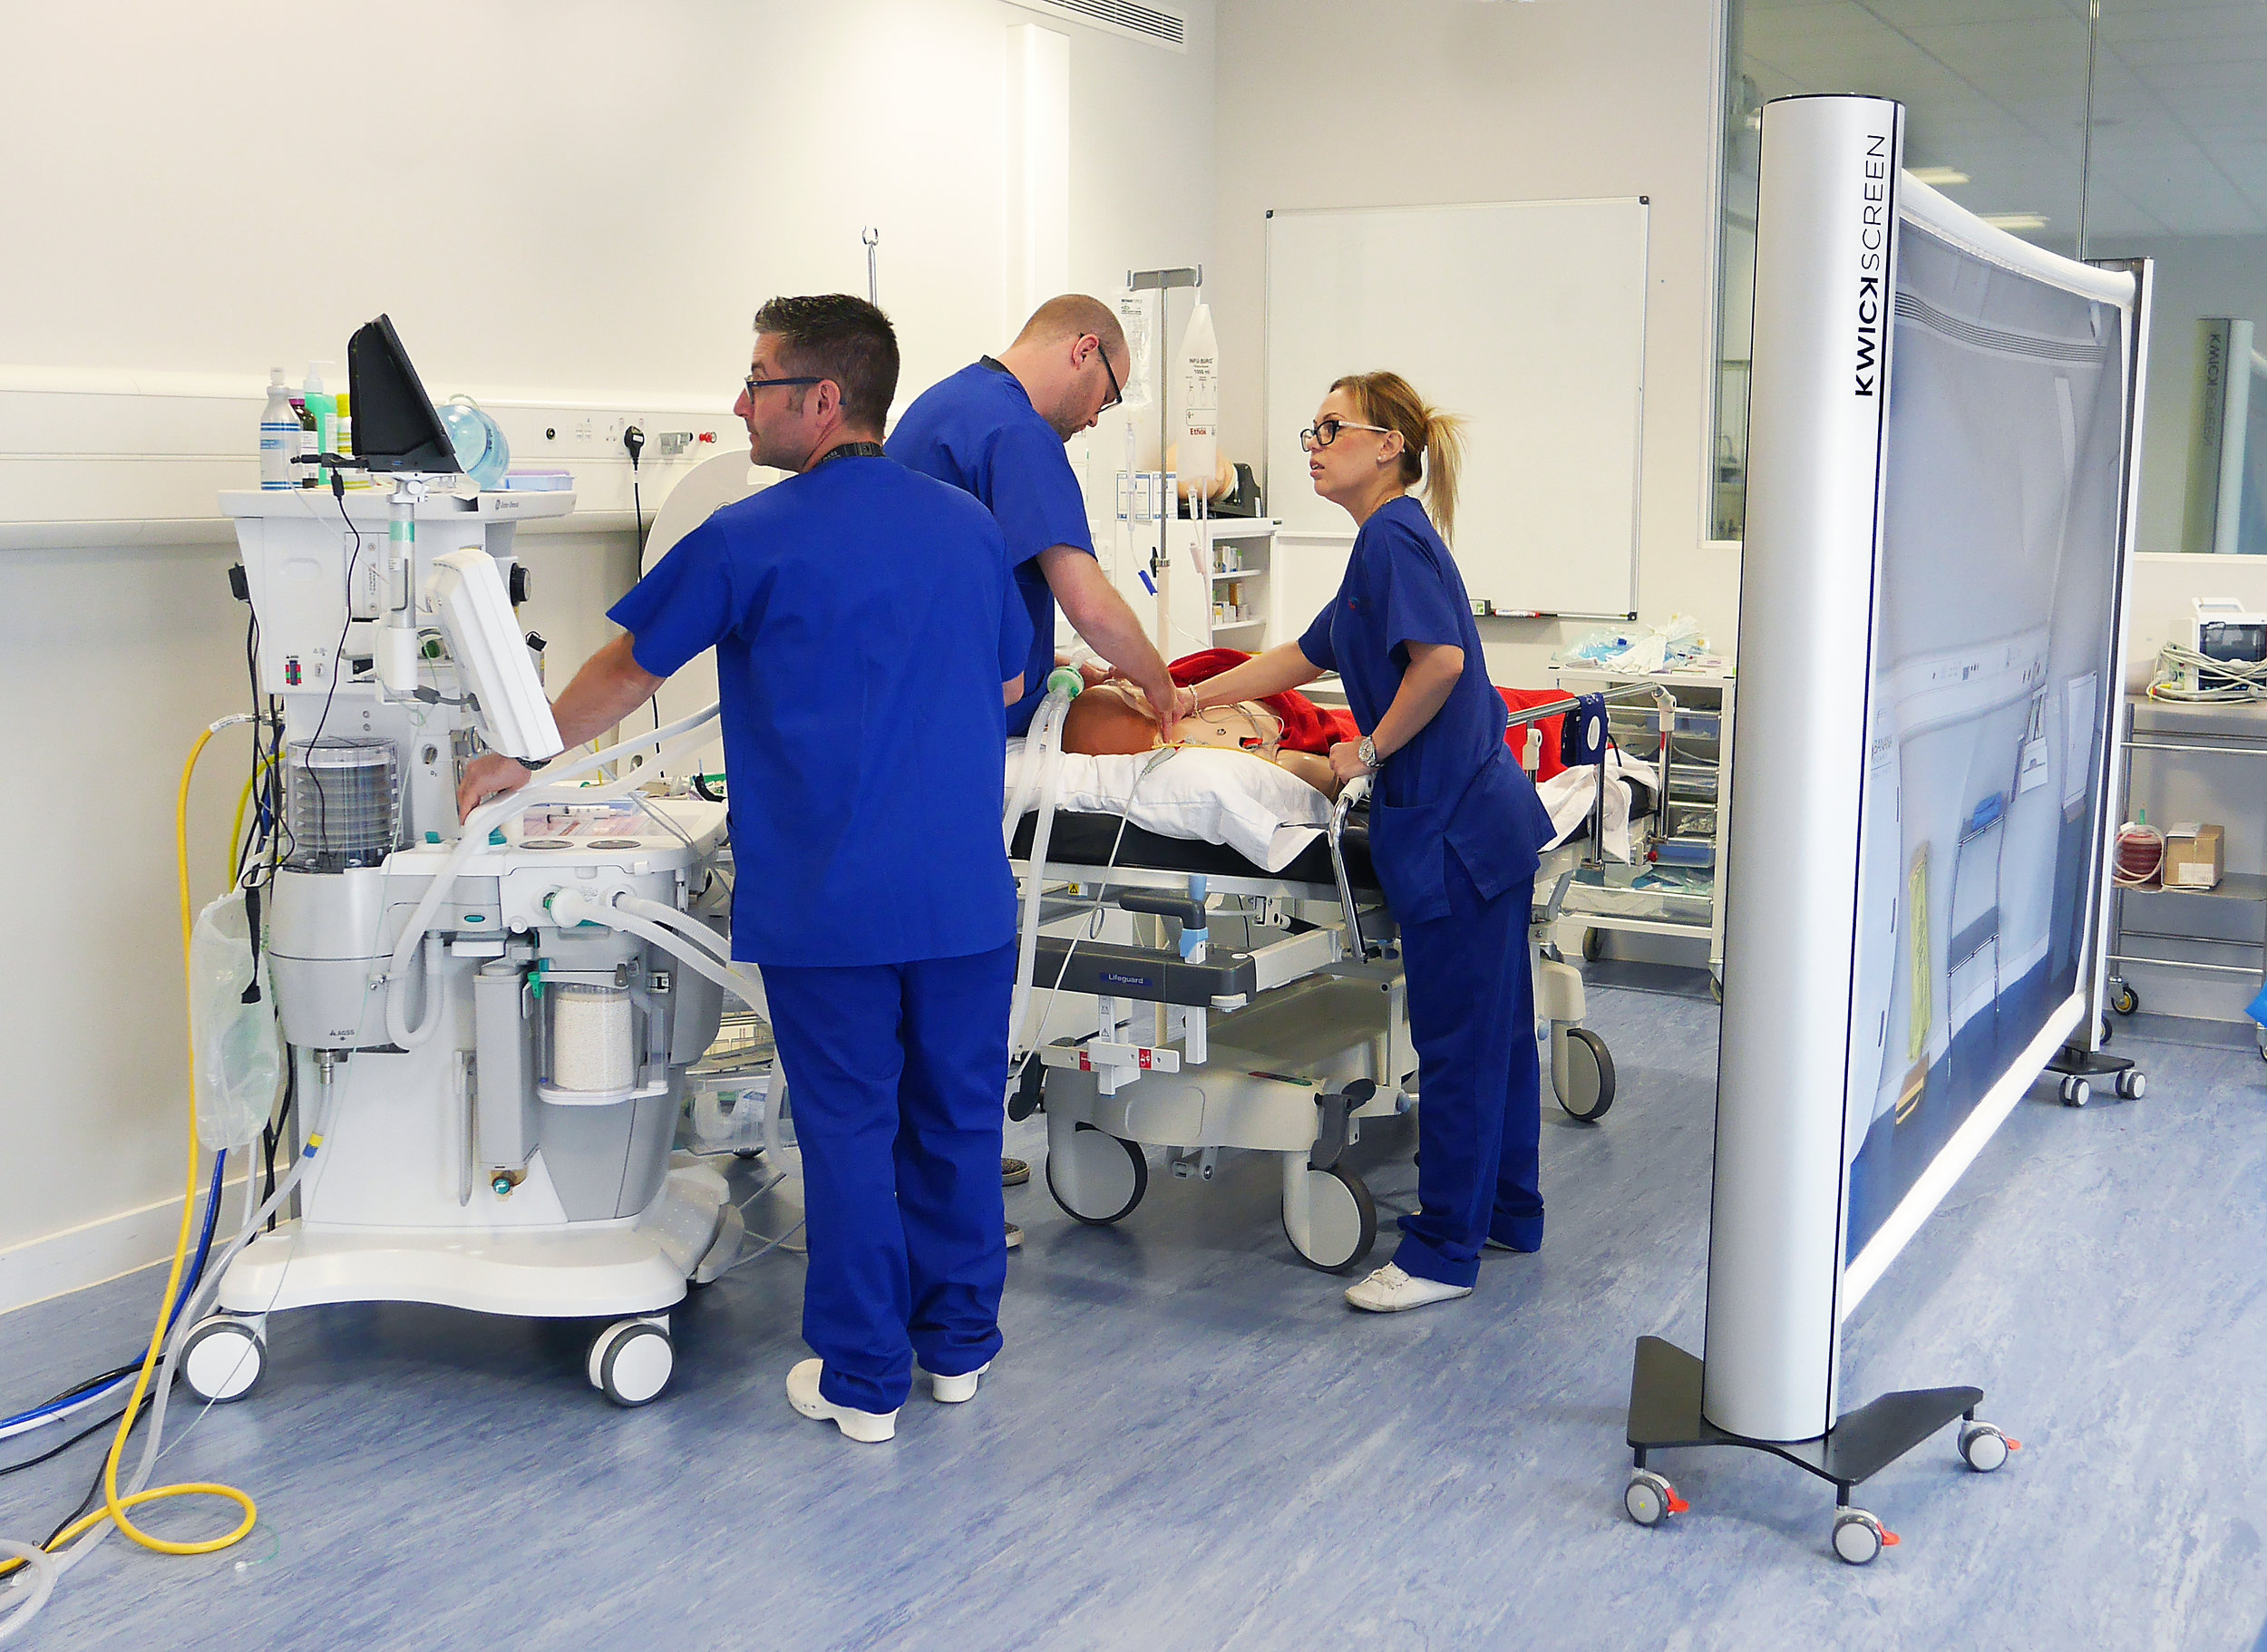 KwickScreens used for aesthetics at Bucks New University Simulation Suite